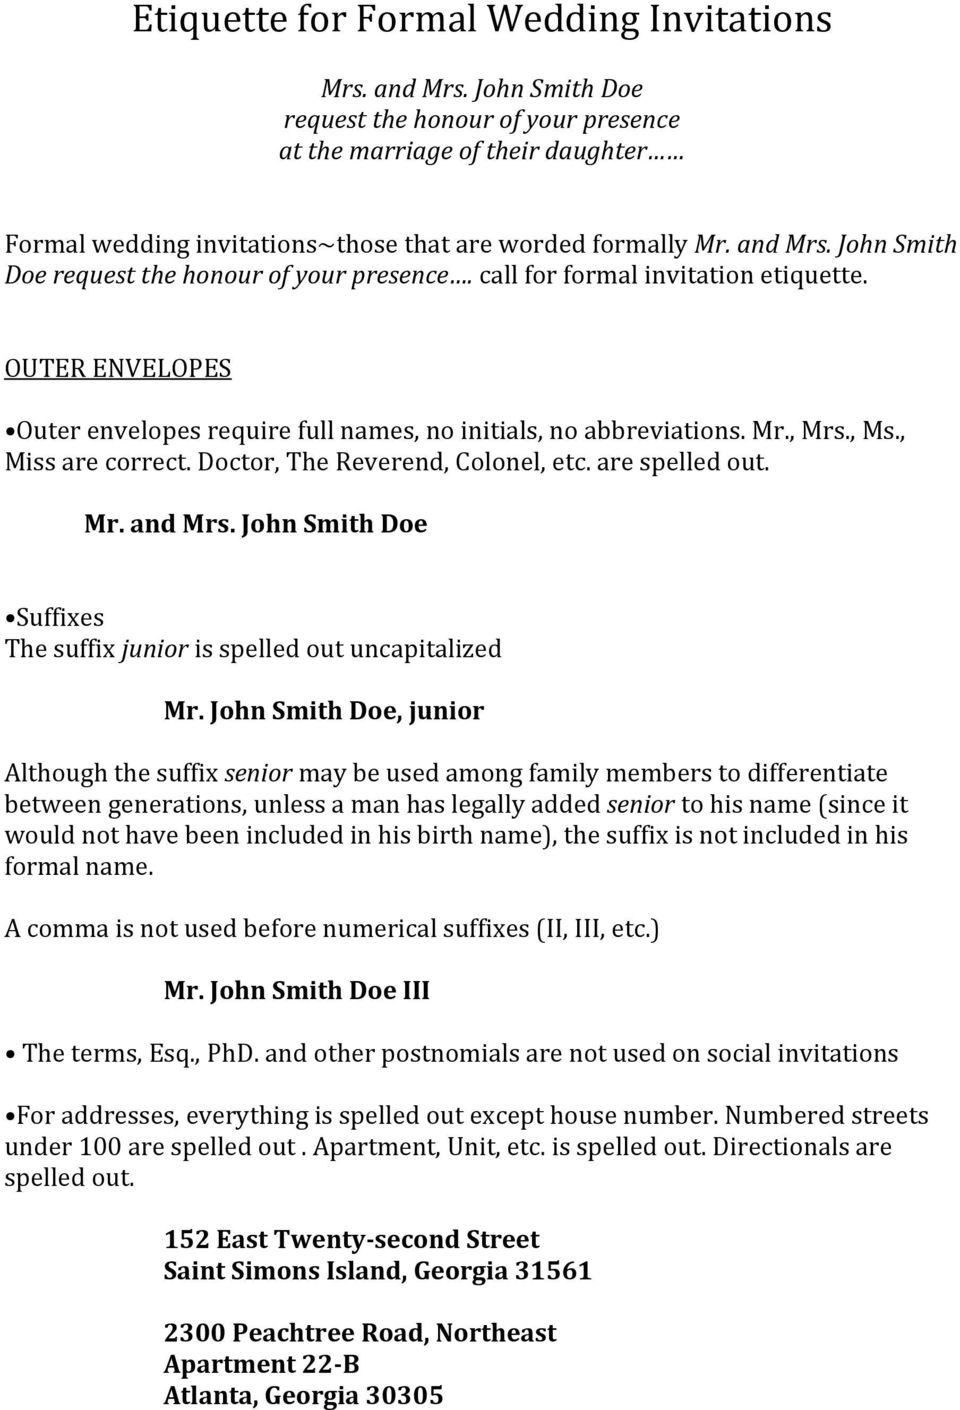 John Smith Doe request the honour of your presence. call for formal invitation etiquette. OUTER ENVELOPES Outer envelopes require full names, no initials, no abbreviations. Mr., Mrs., Ms.